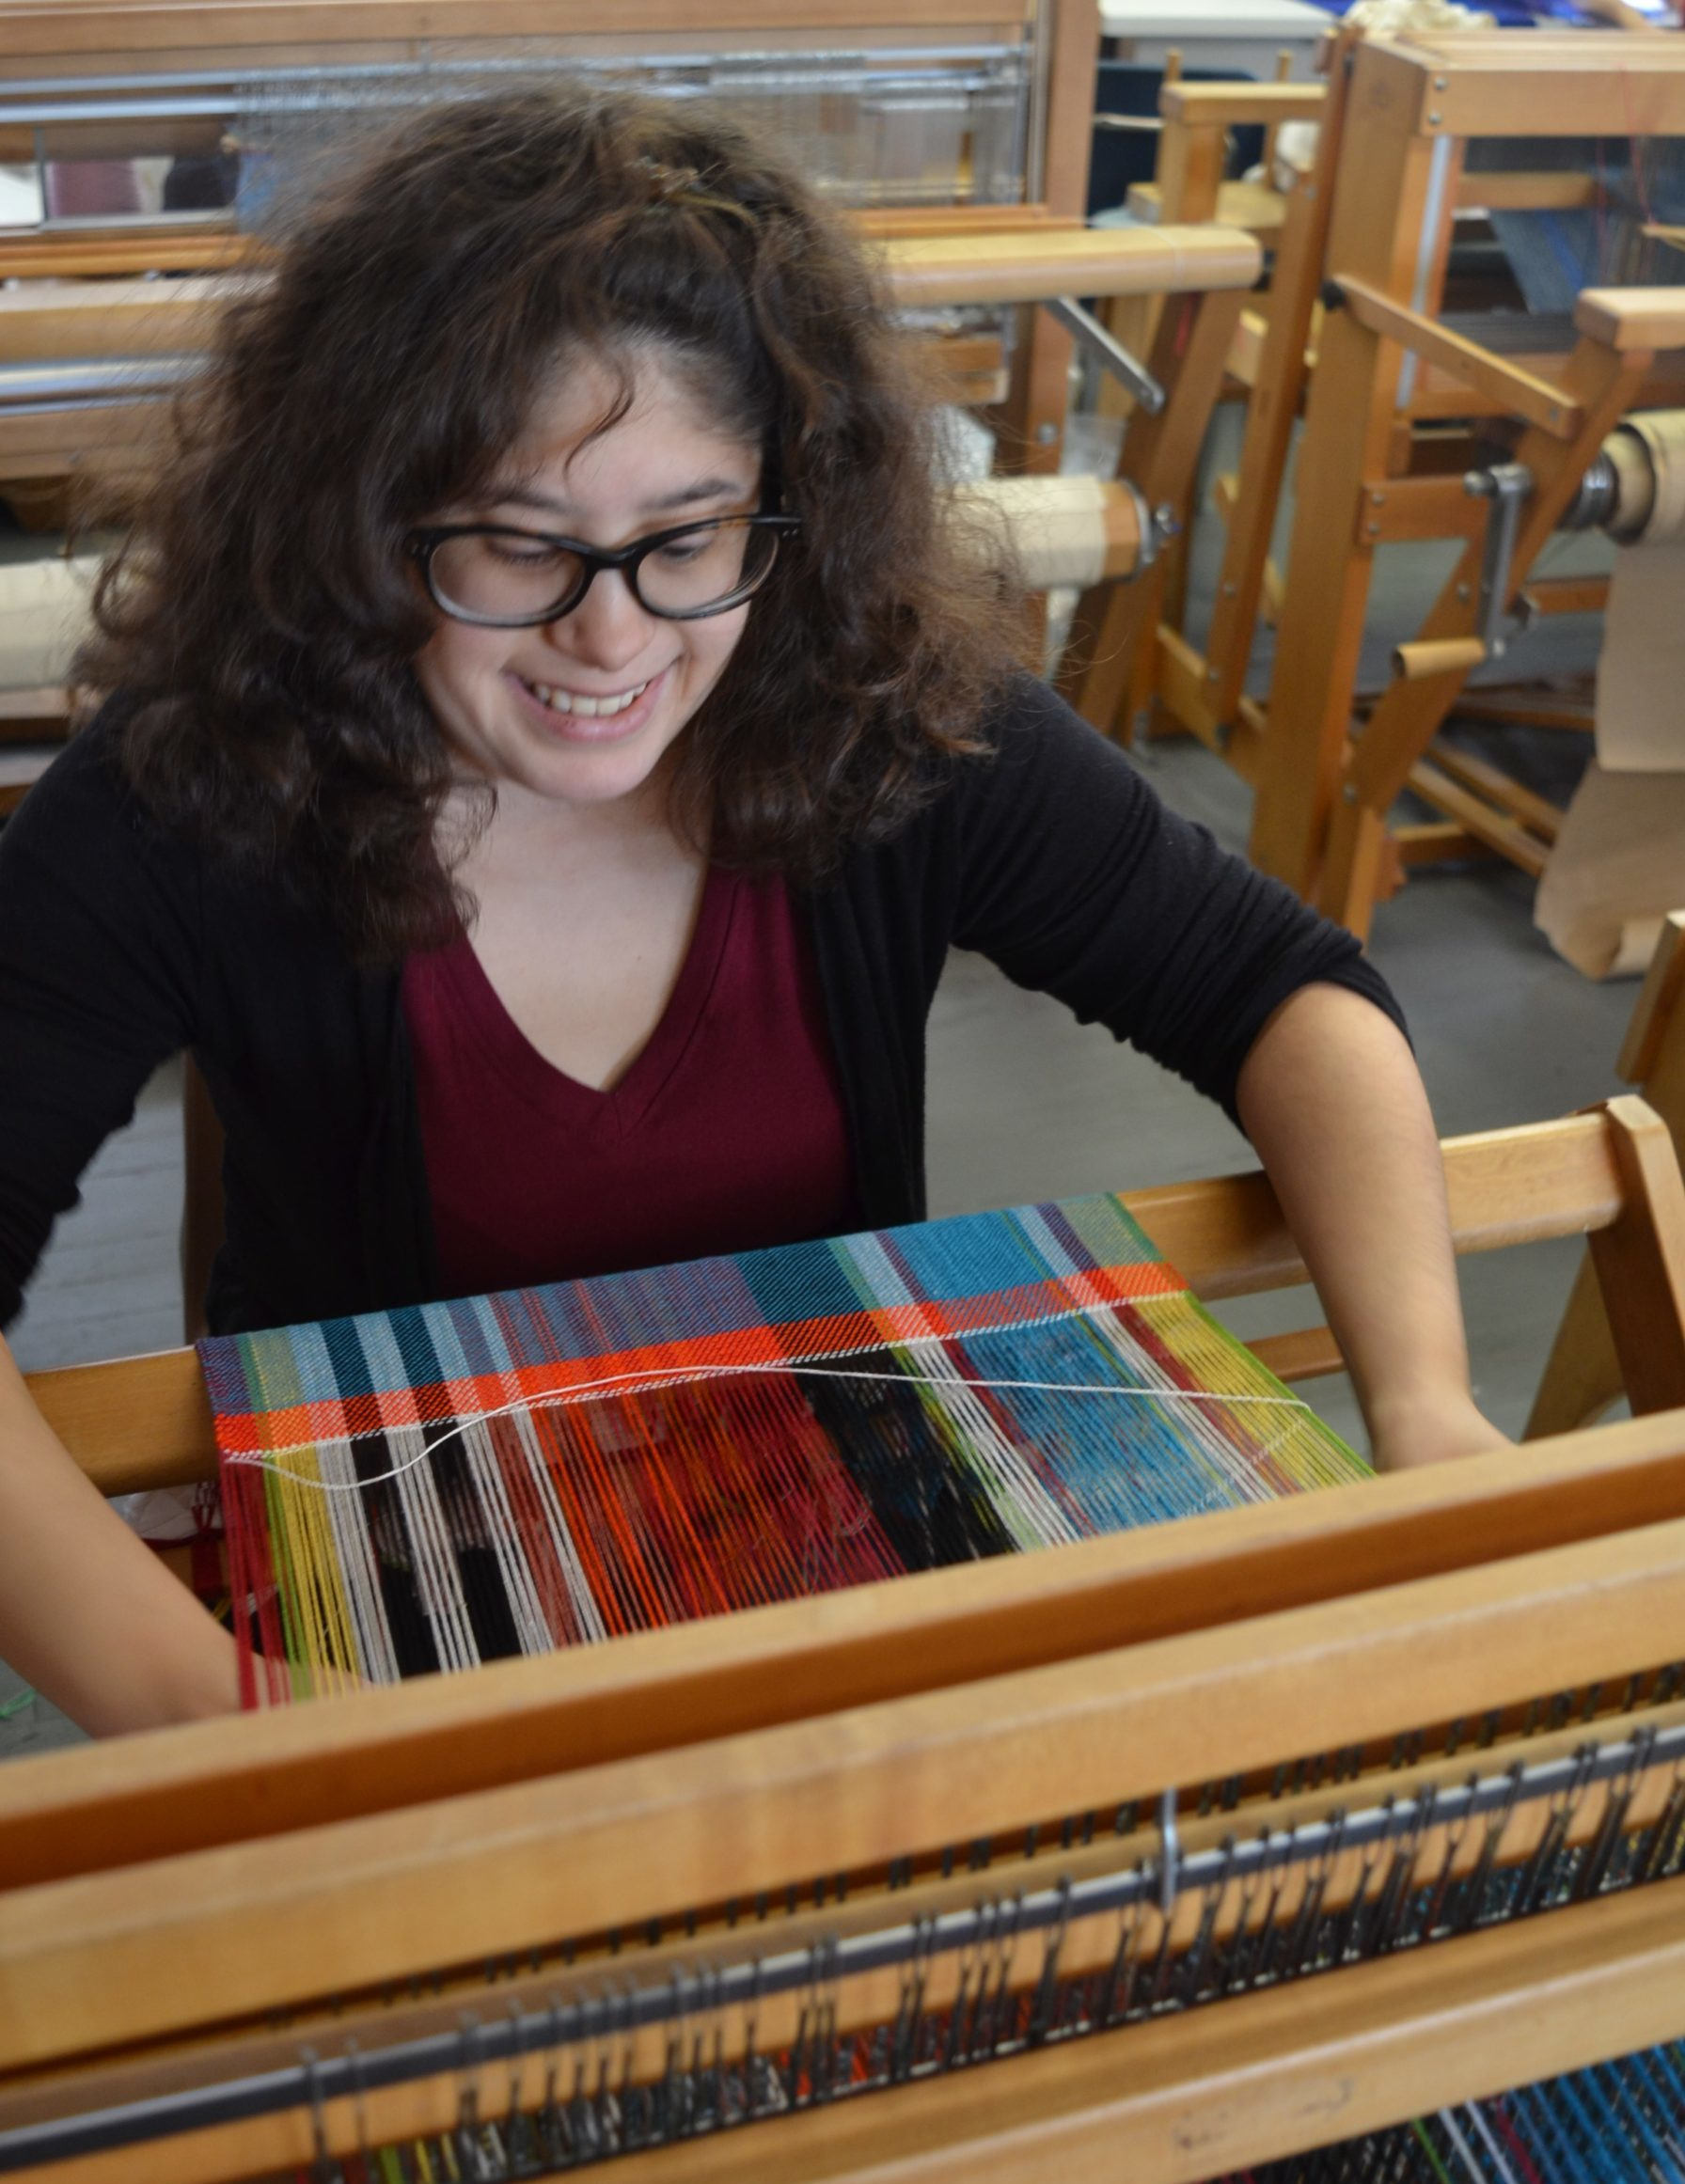 Sofia Bocanegra in the weaving studio